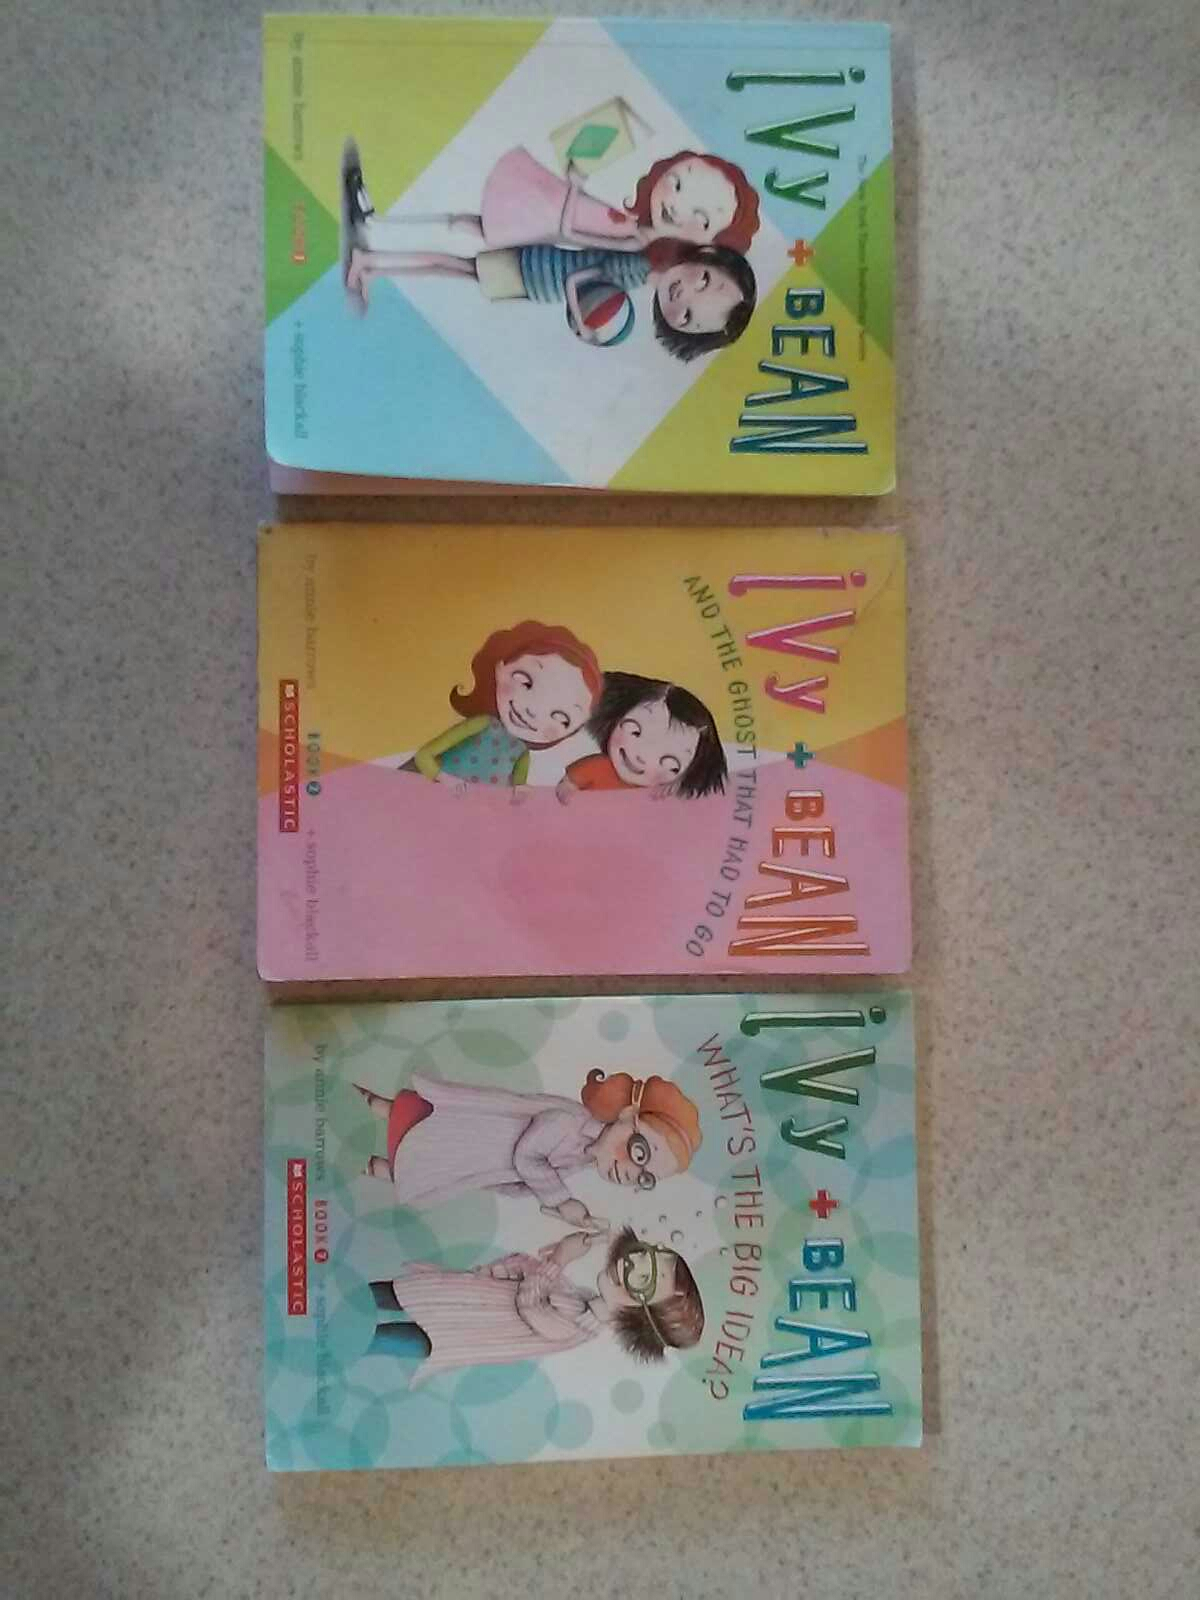 Ivy + BEAN Books Set of 3 for $5.00